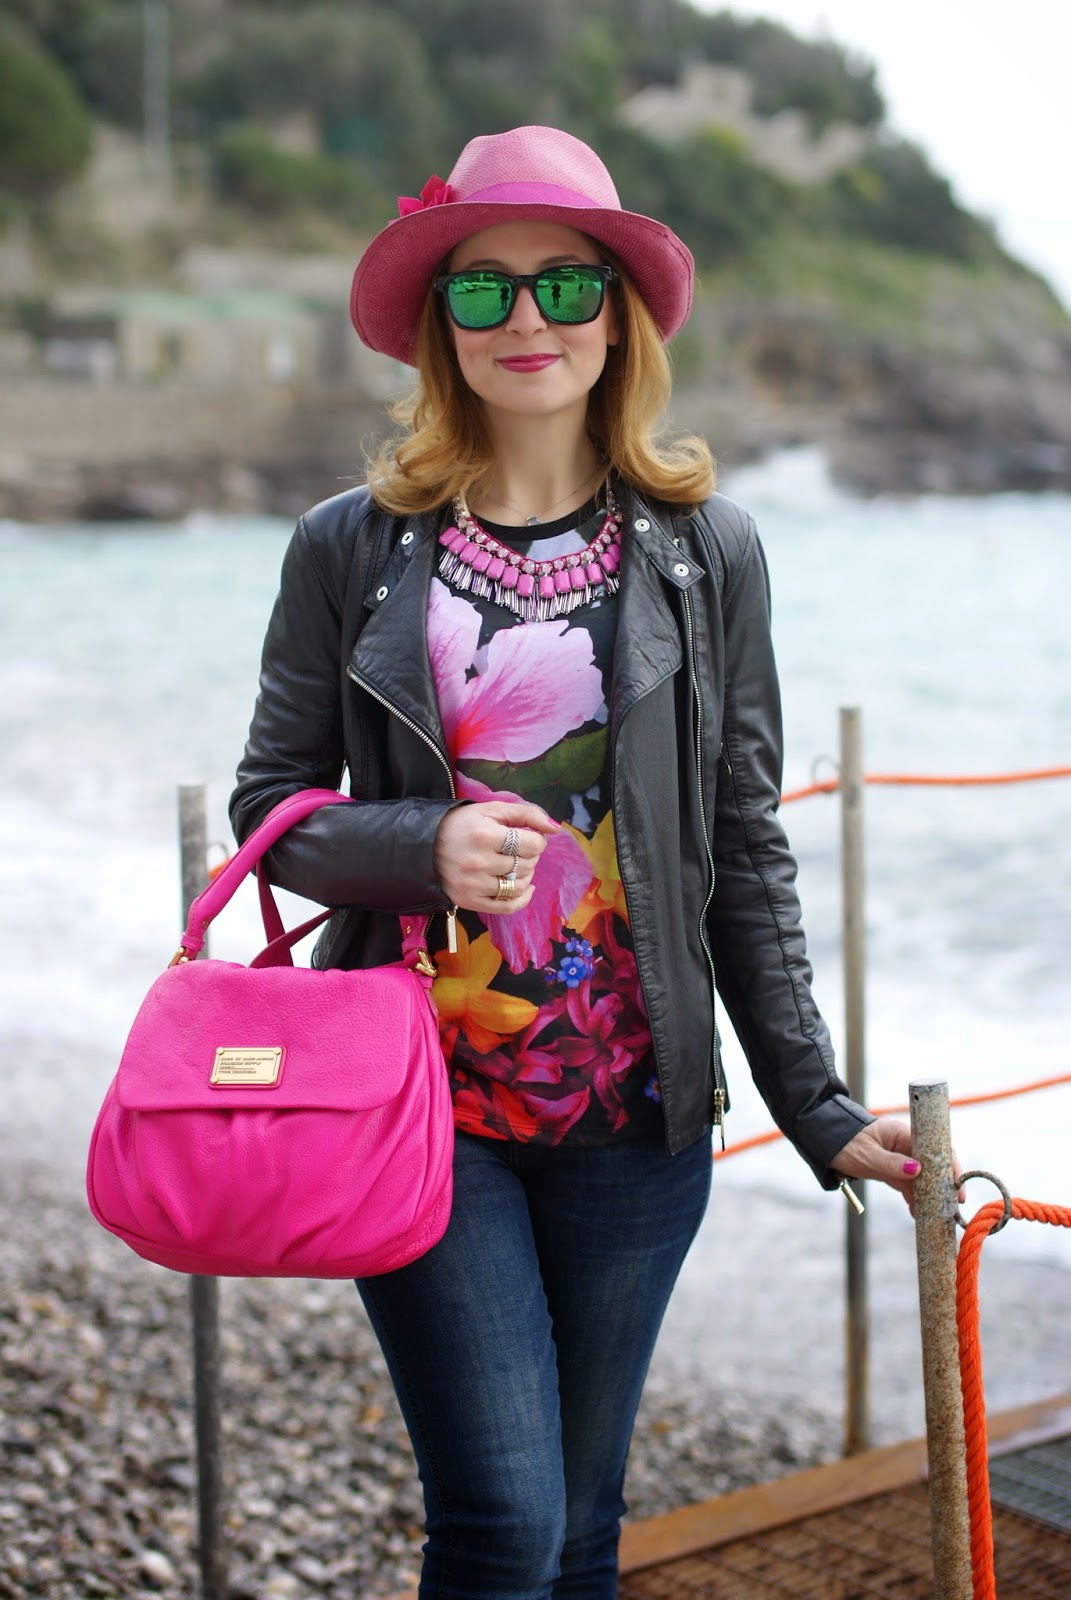 Rosé a pois hat, shopart amazing tee, Sodini necklace, Marc by Marc Jacobs lil ukita bag, Shopart t-shirt, Fashion and Cookies, fashion blogger